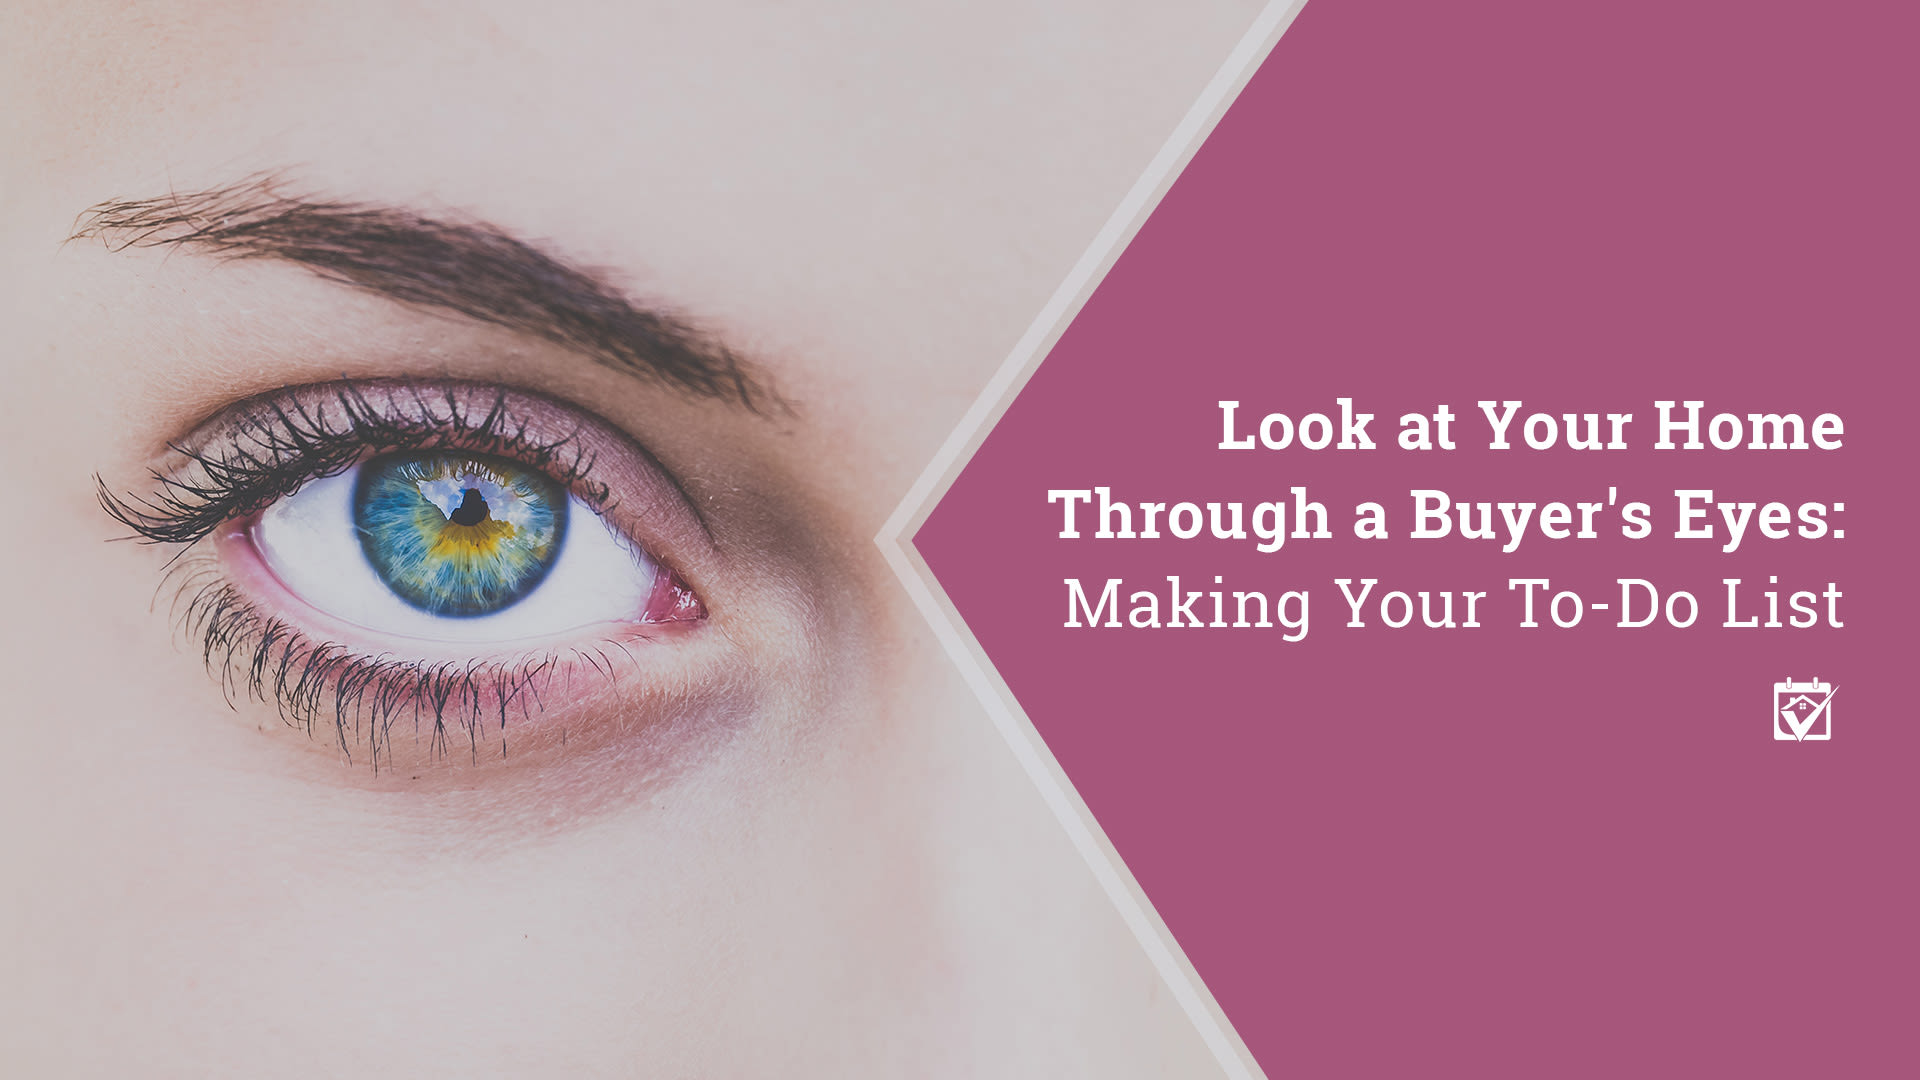 Look at your home through a Buyer's eyes